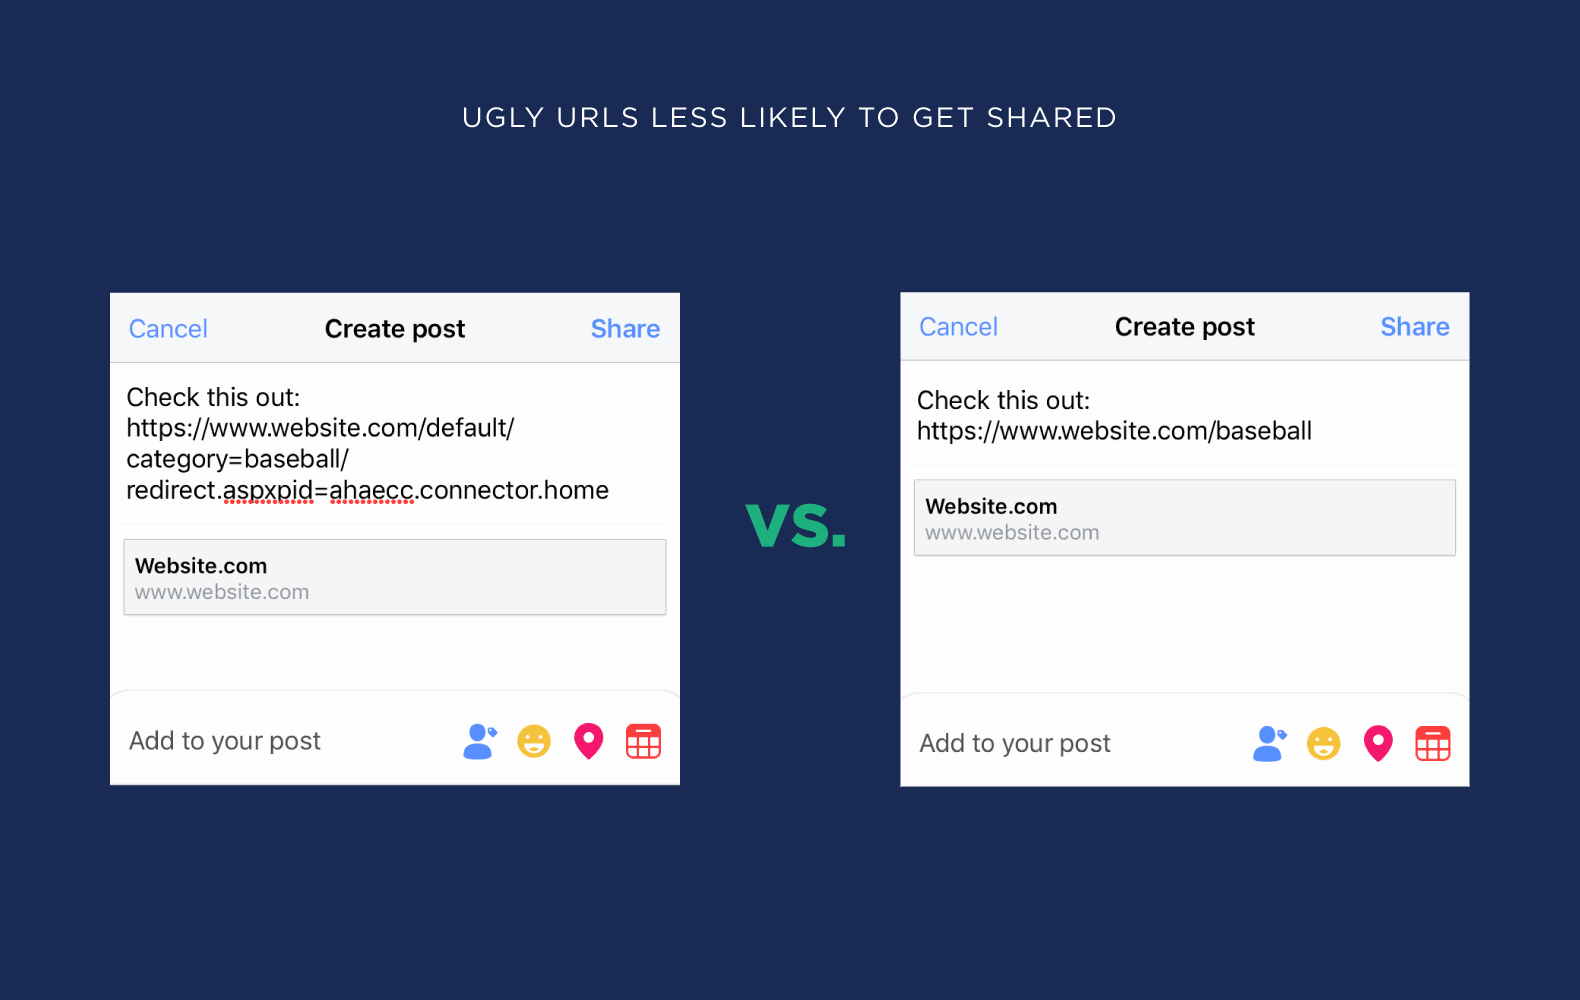 Ugly URLs are less likely to get shared